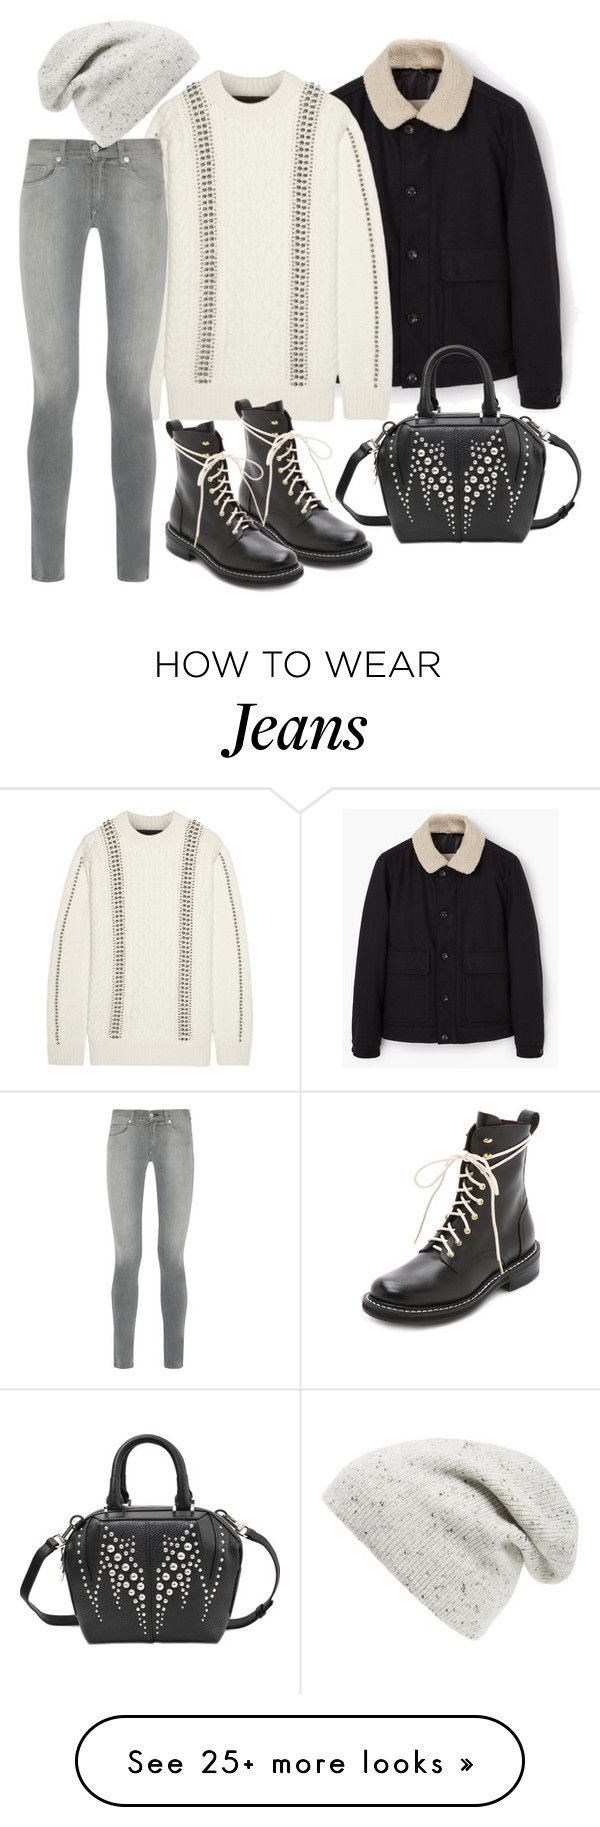 """Untitled #3210"" by bubbles-wardrobe on Polyvore featuring мода, MANGO, Alexander Wang и rag & bone"